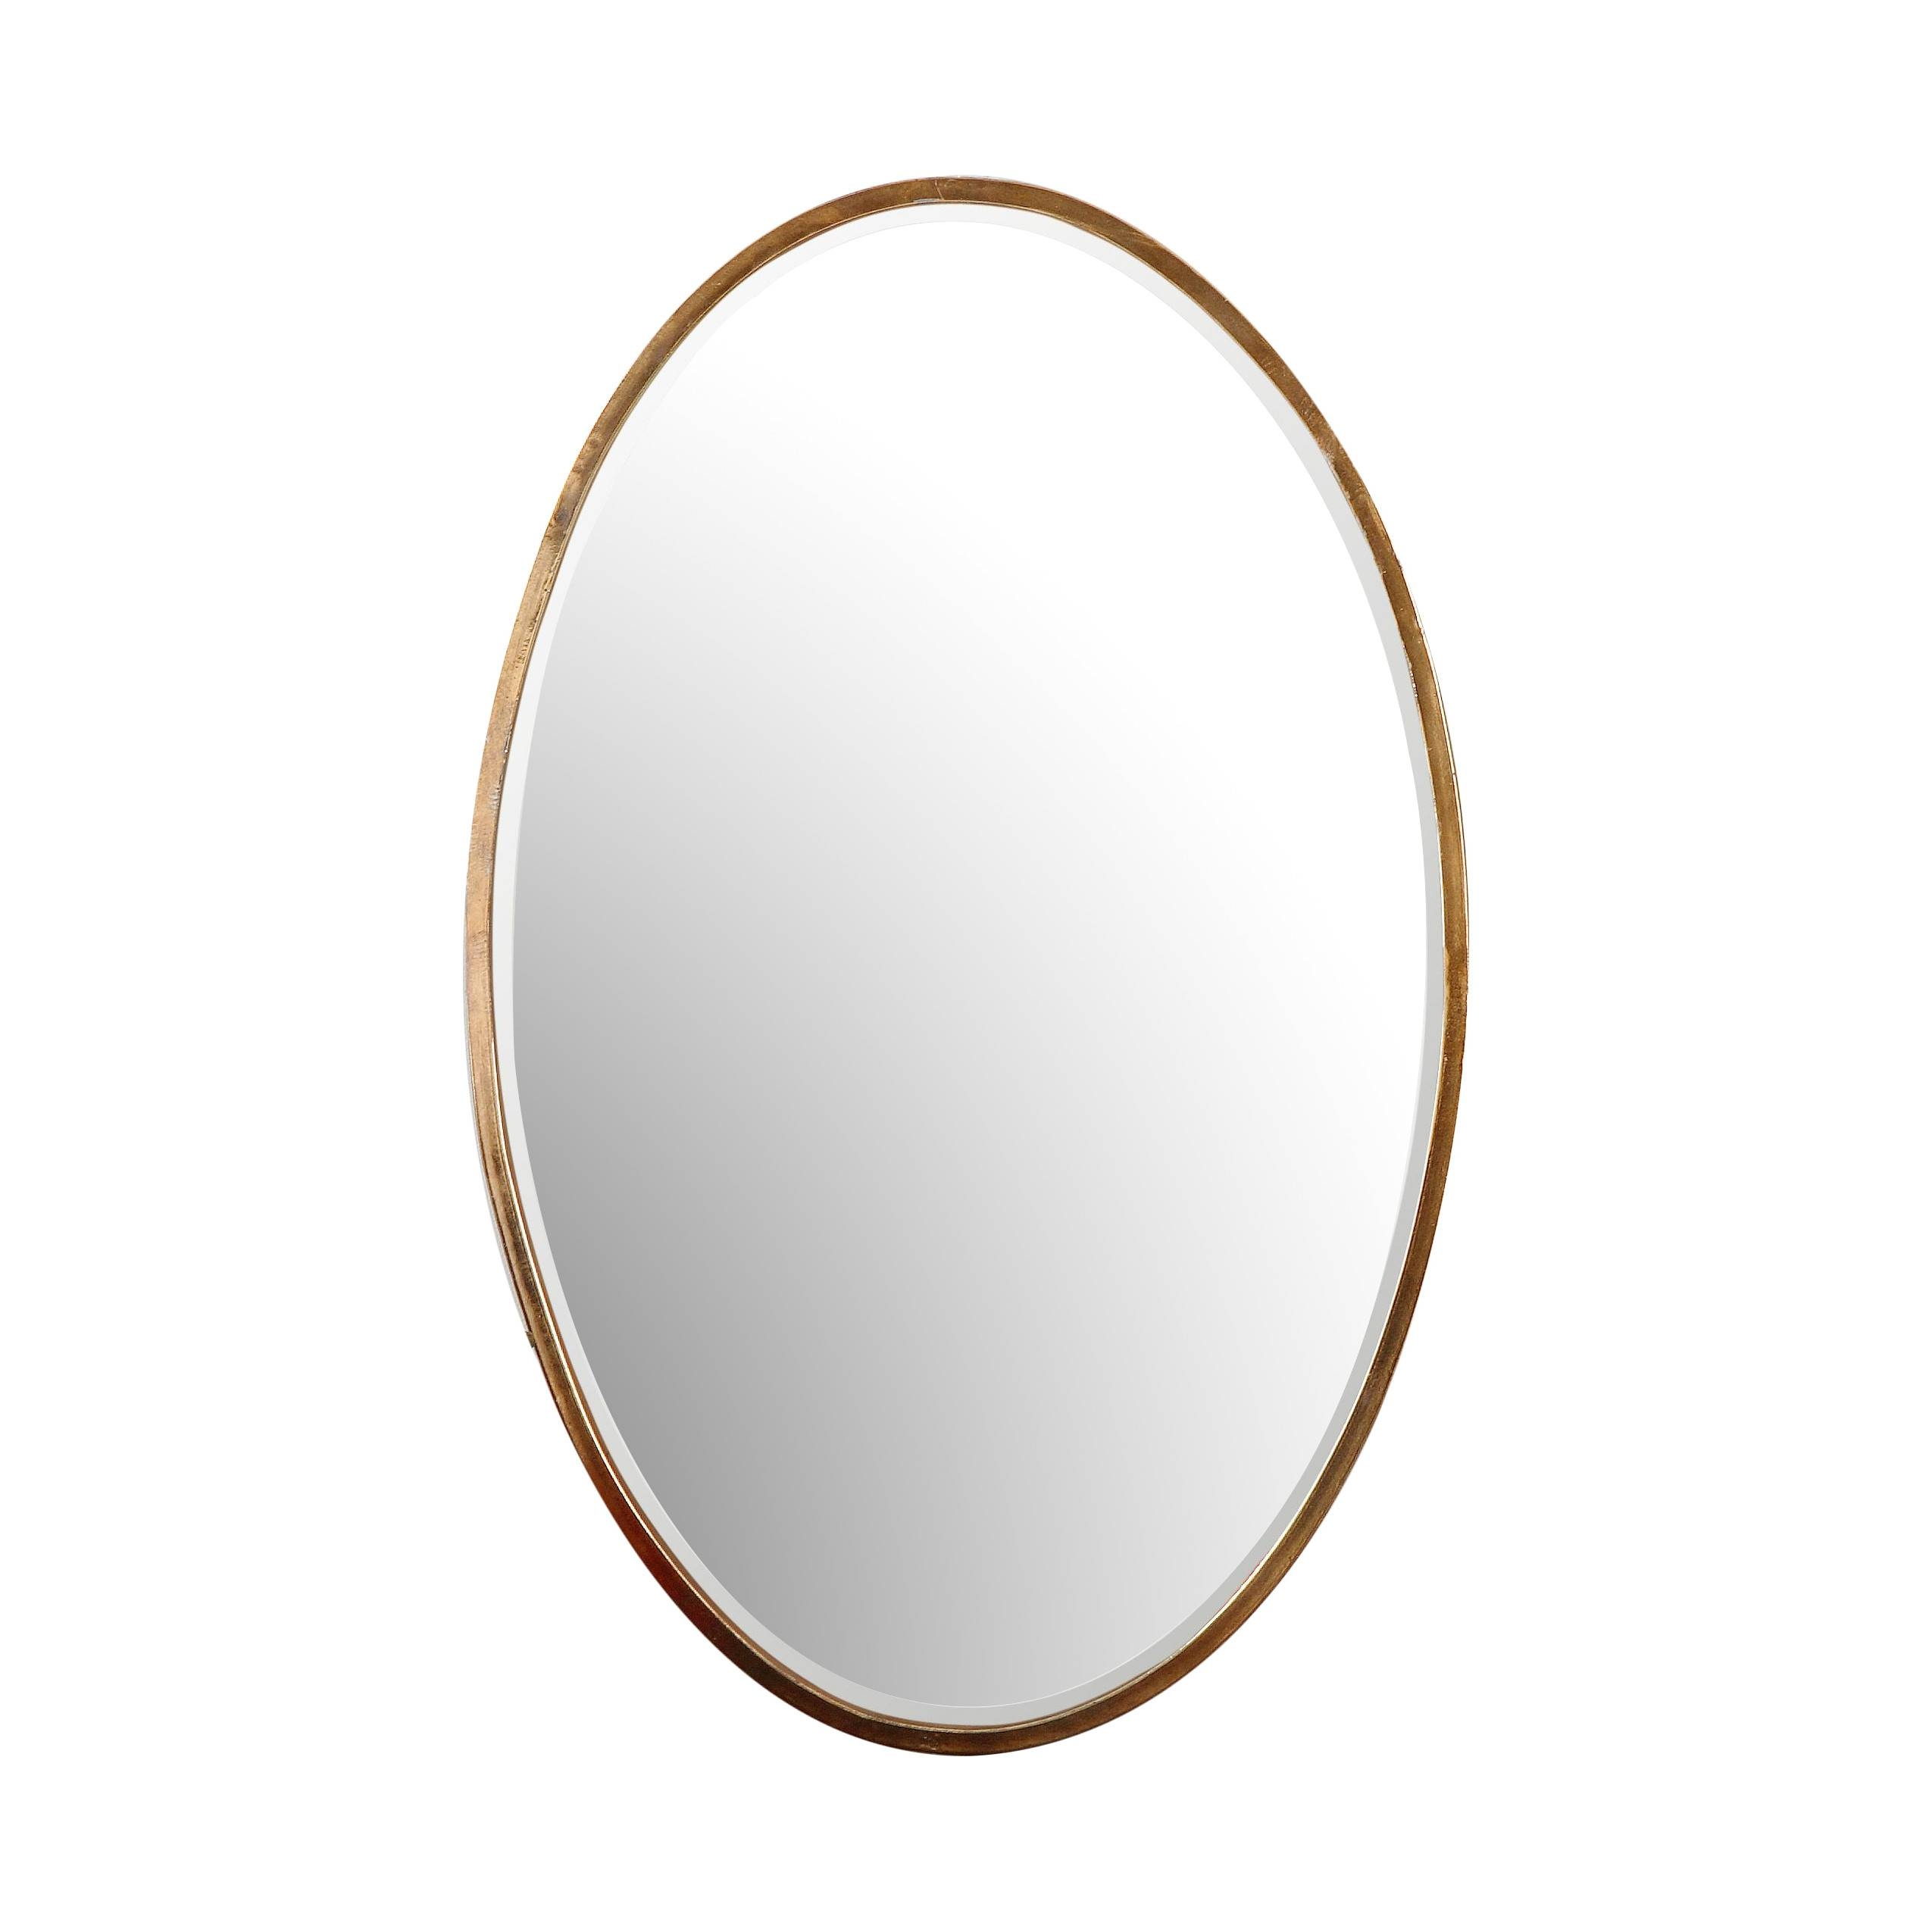 Triple Oval Wall Mirror - Oval Wall Mirror For The Elegant One To with regard to Triple Oval Mirrors (Image 24 of 25)